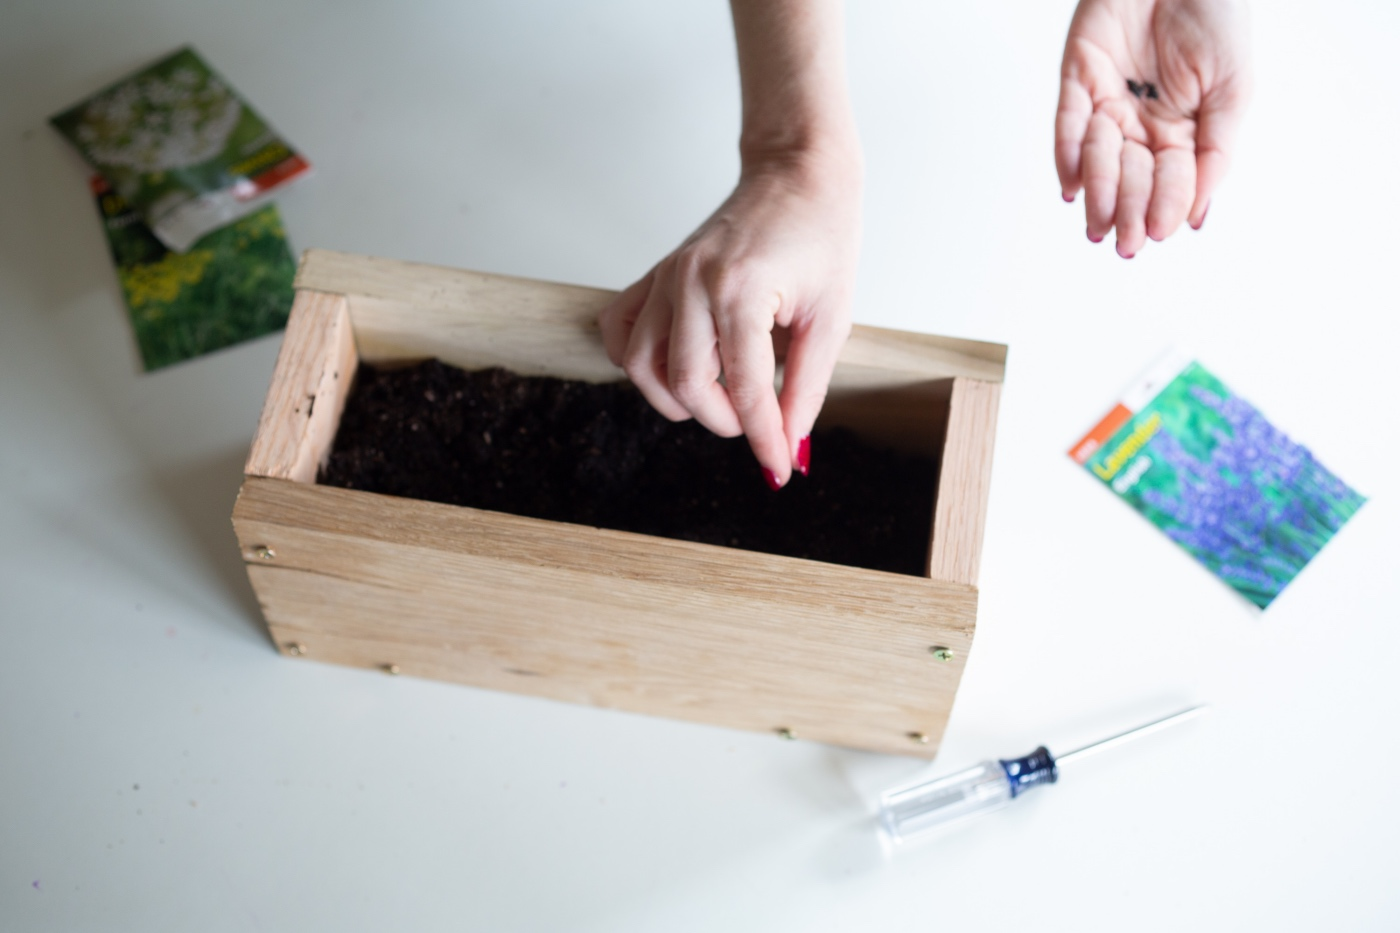 how to plant herb seeds in the diy wood planter box